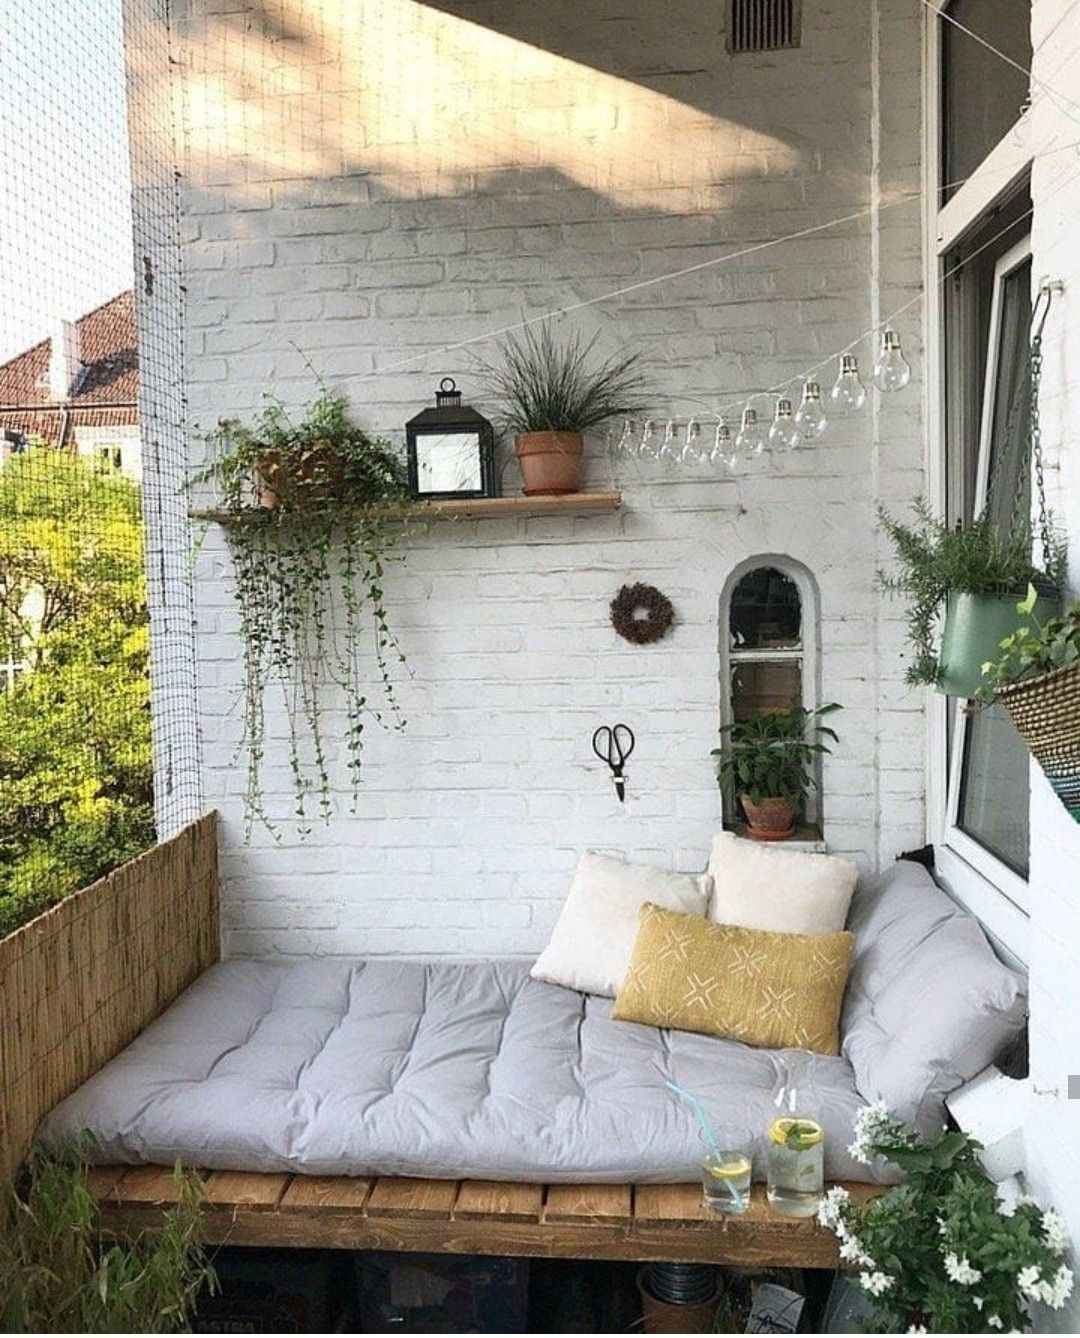 Diy Balcony Garden Ideas: Cozy Garden Or Porch Nook For Sitting And Relaxing